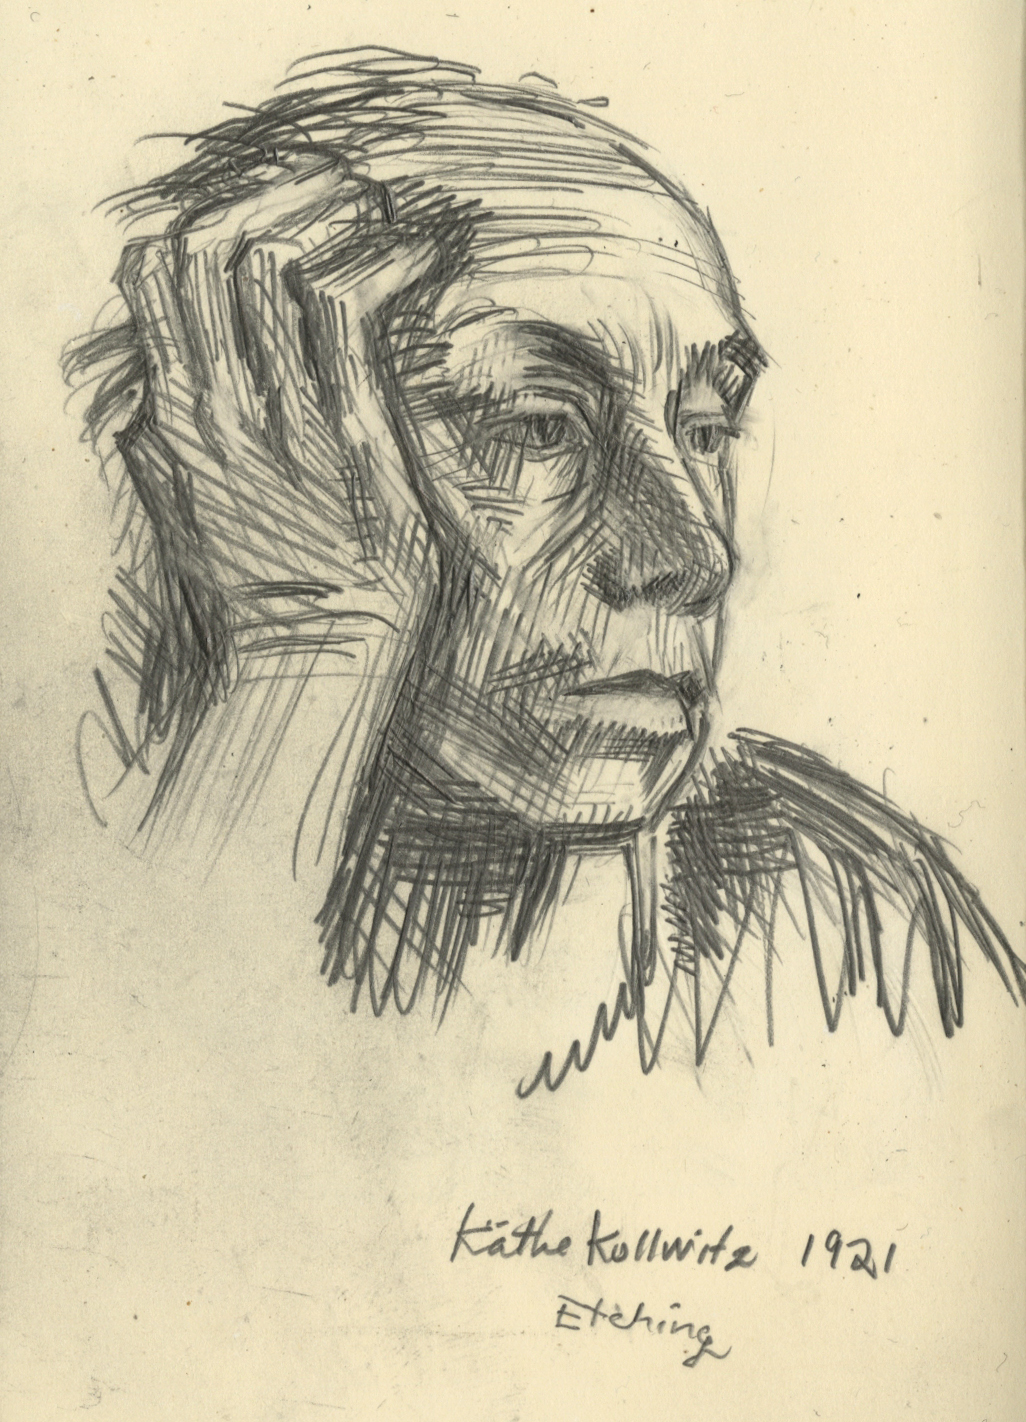 Drawing after Kollwitz self portrait litho